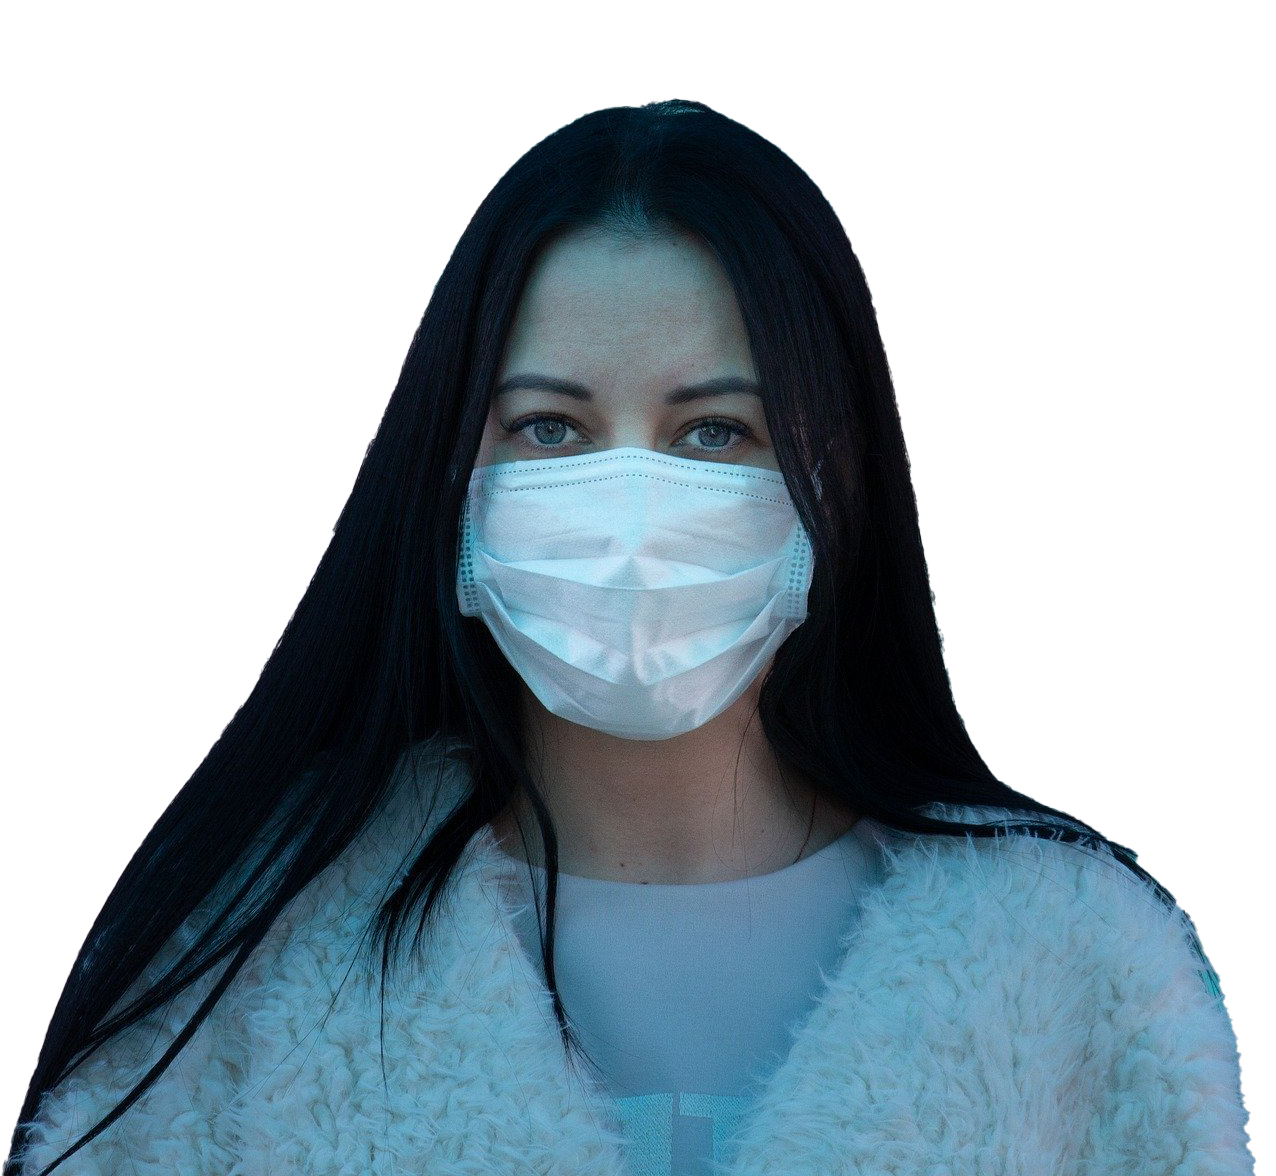 Face Mask PNG Free Image